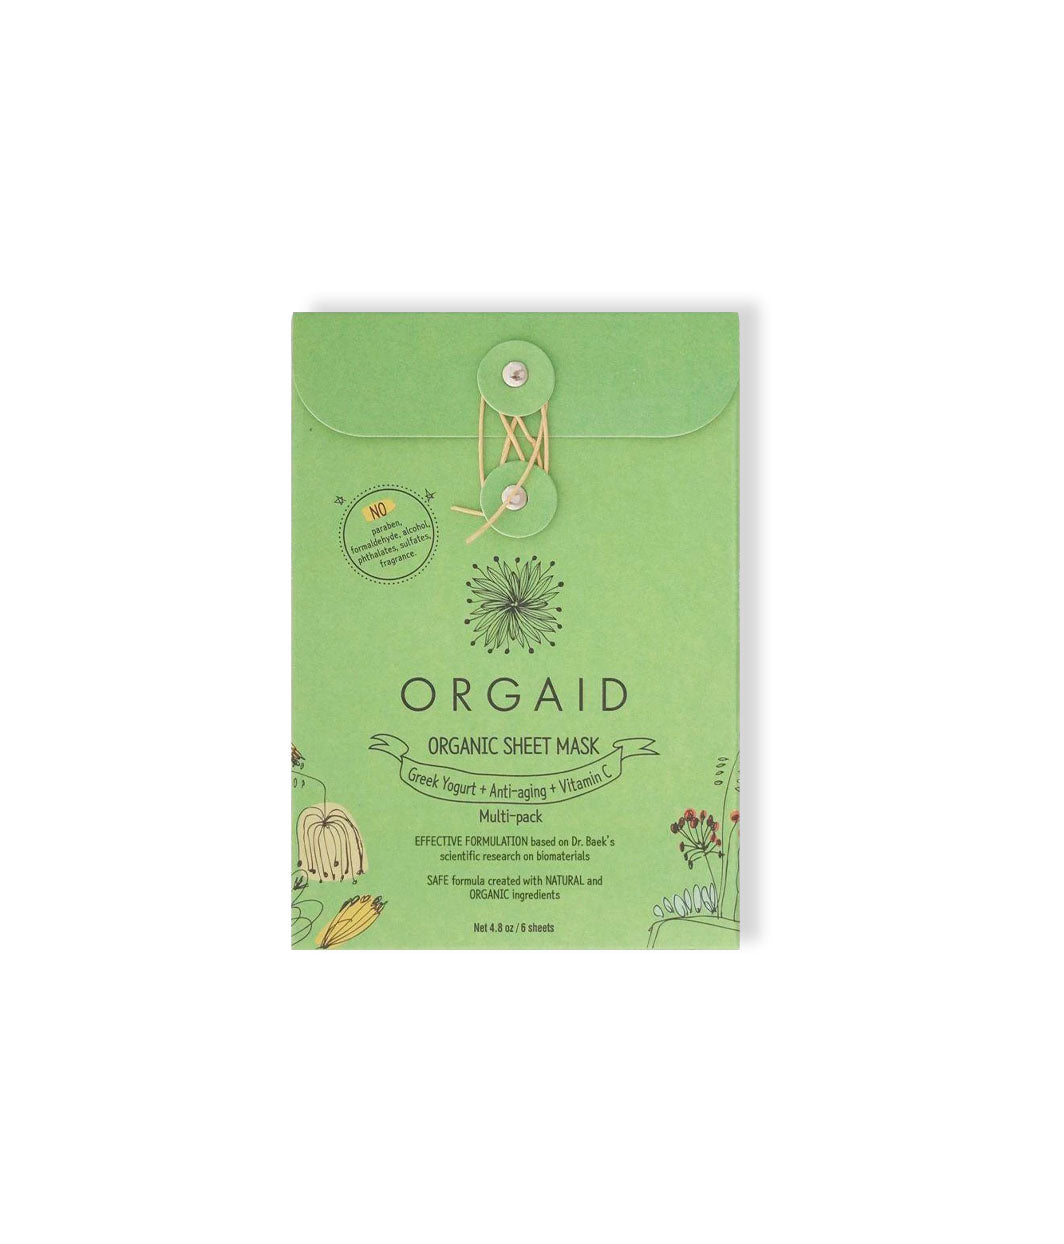 Organic Sheet Mask Set - LEMON LAINE - Masks - Orgaid